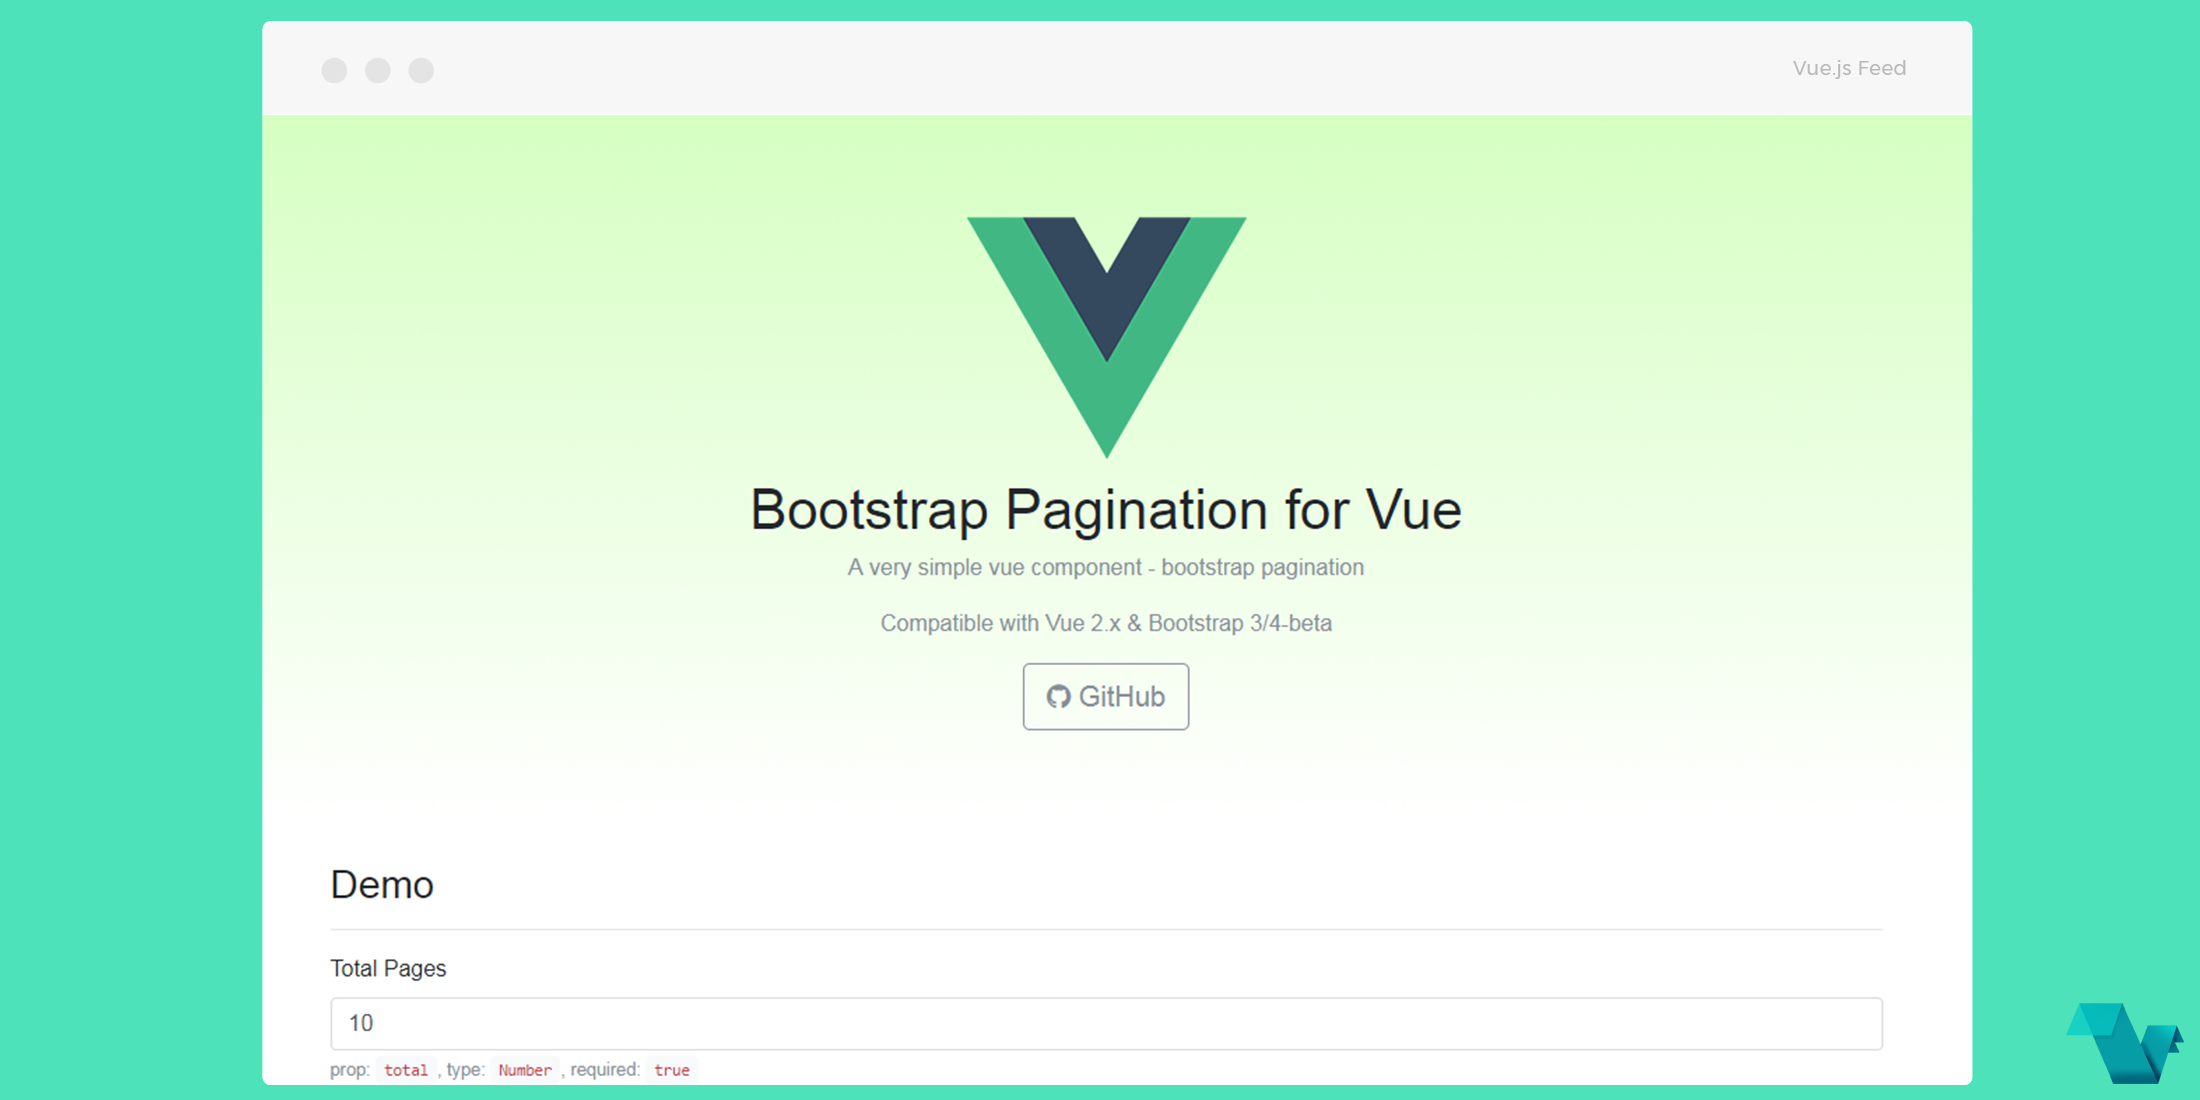 Vue Pagination component For Bootstrap - Vue js Feed